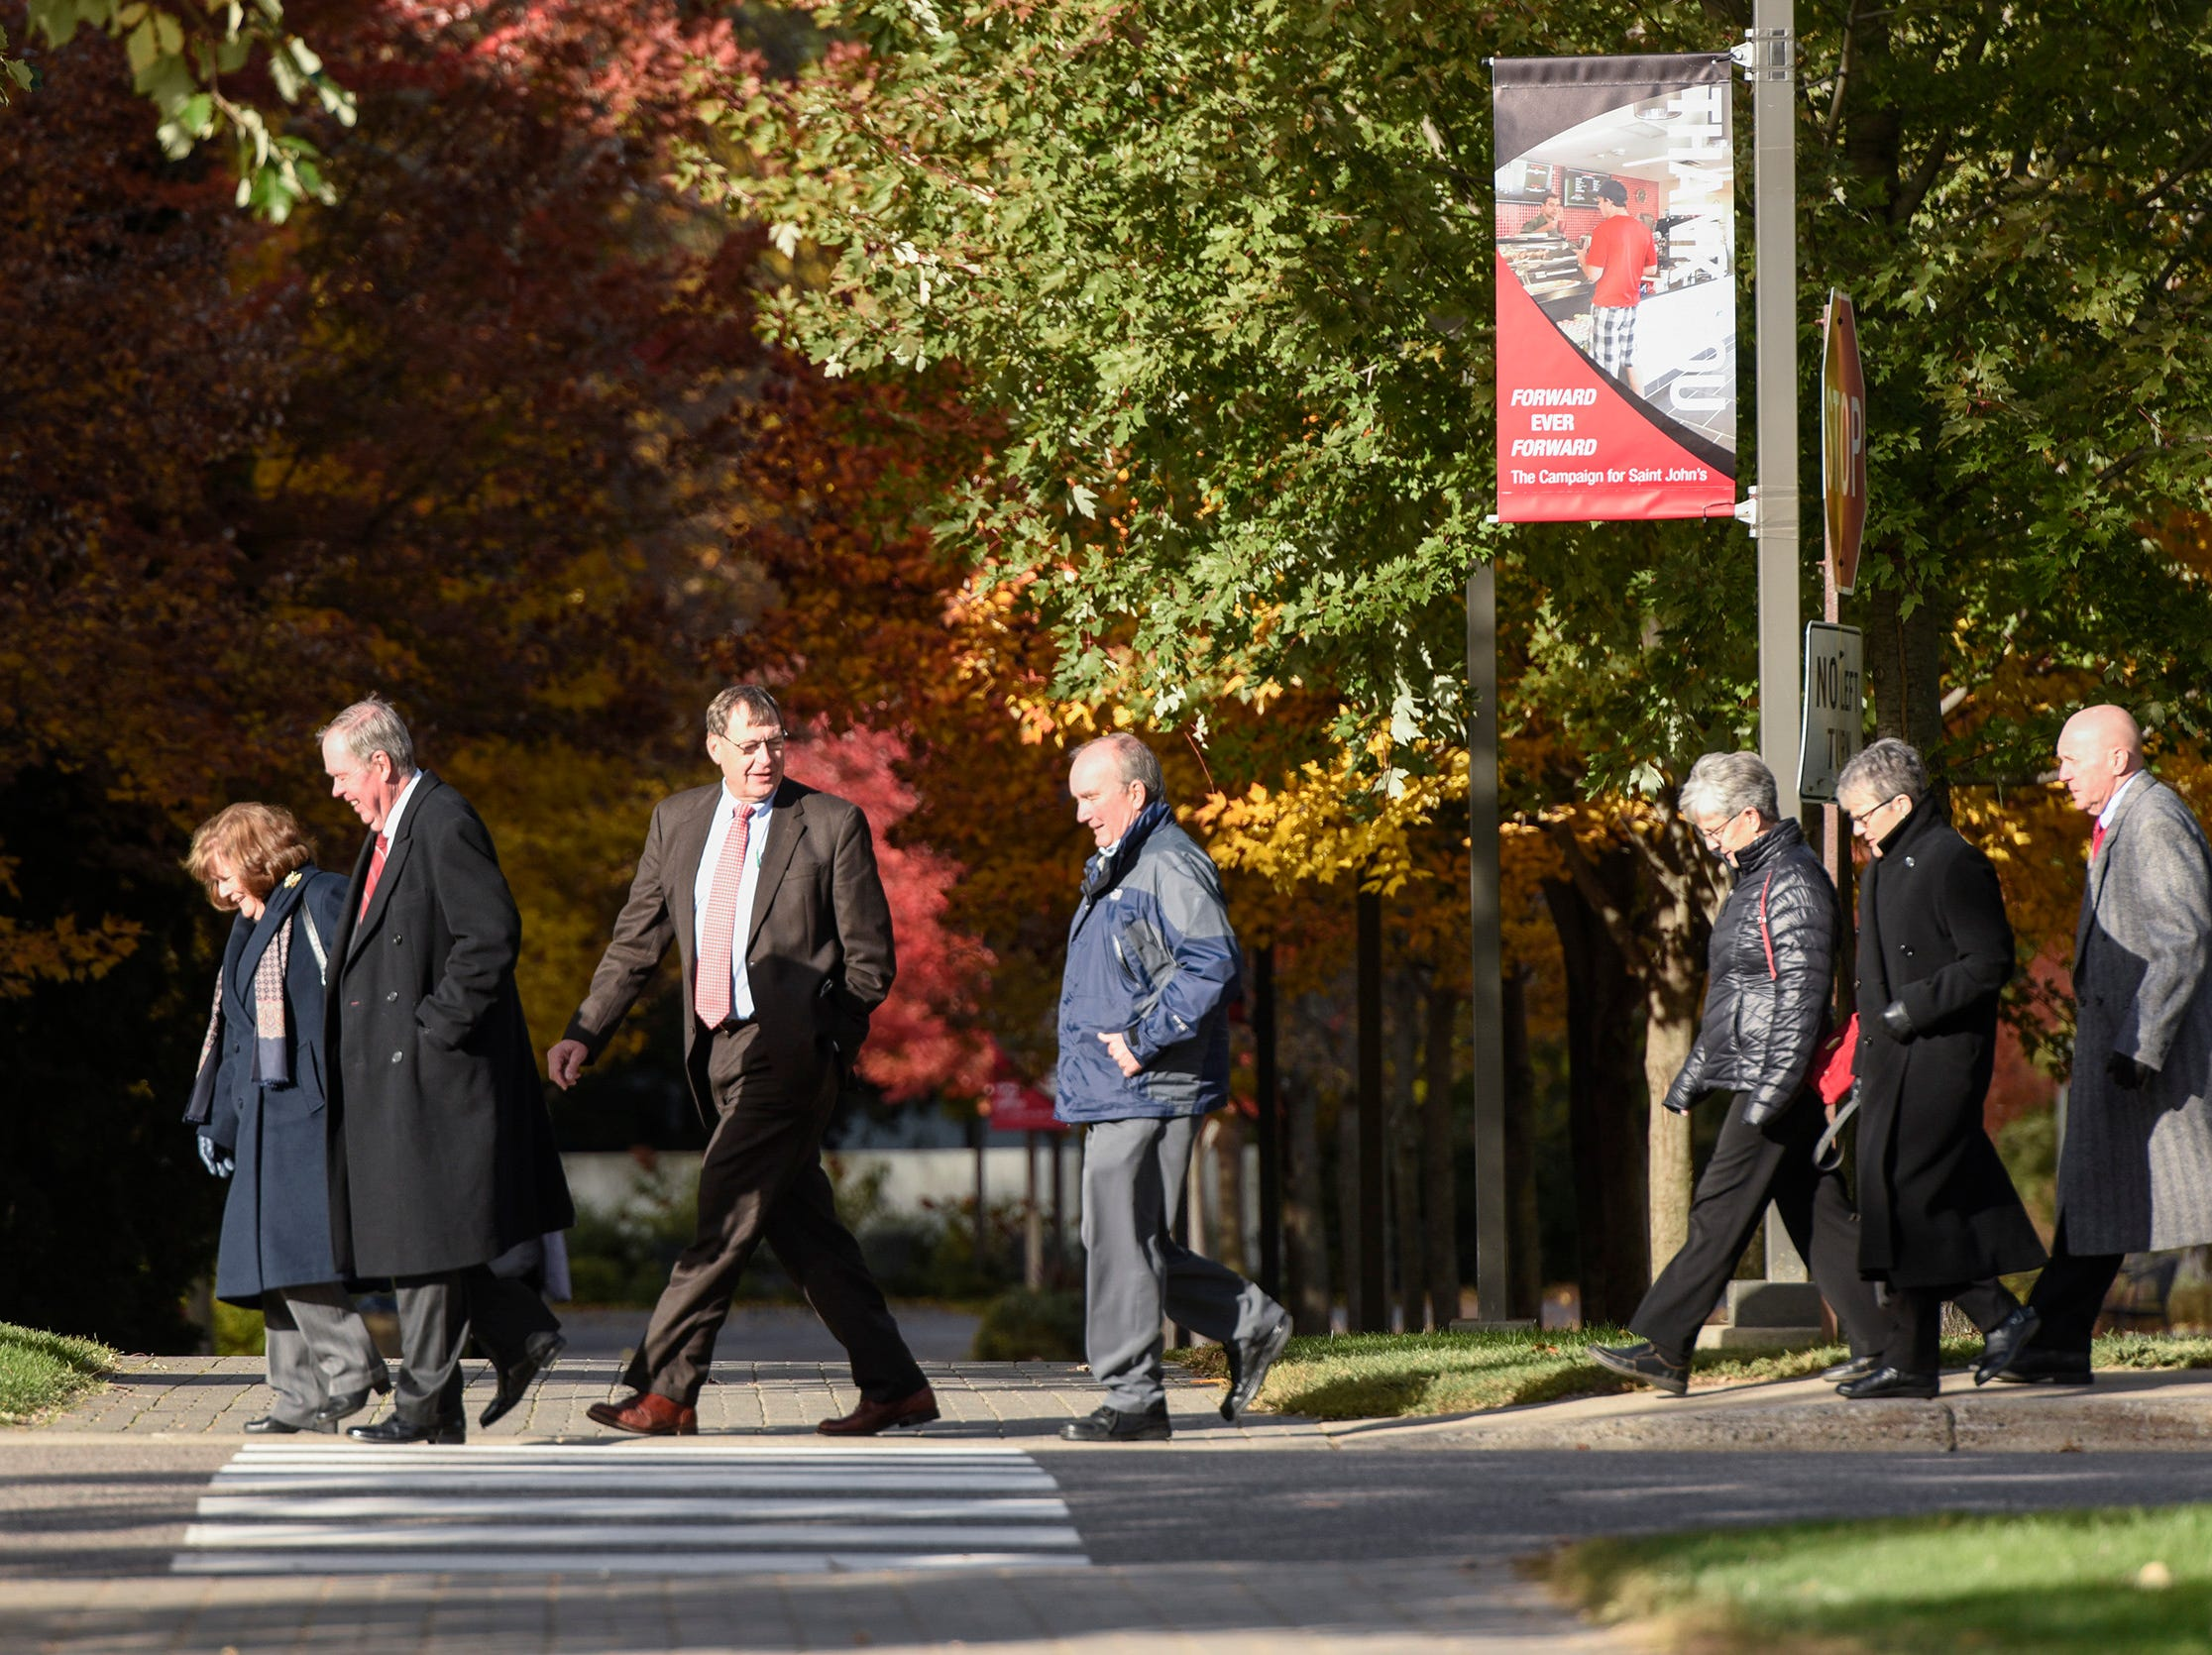 People start arriving for the funeral of long time St. John's University football coach John Gagliardi Monday, Oct. 15, at the St. John's Abbey in Collegeville.